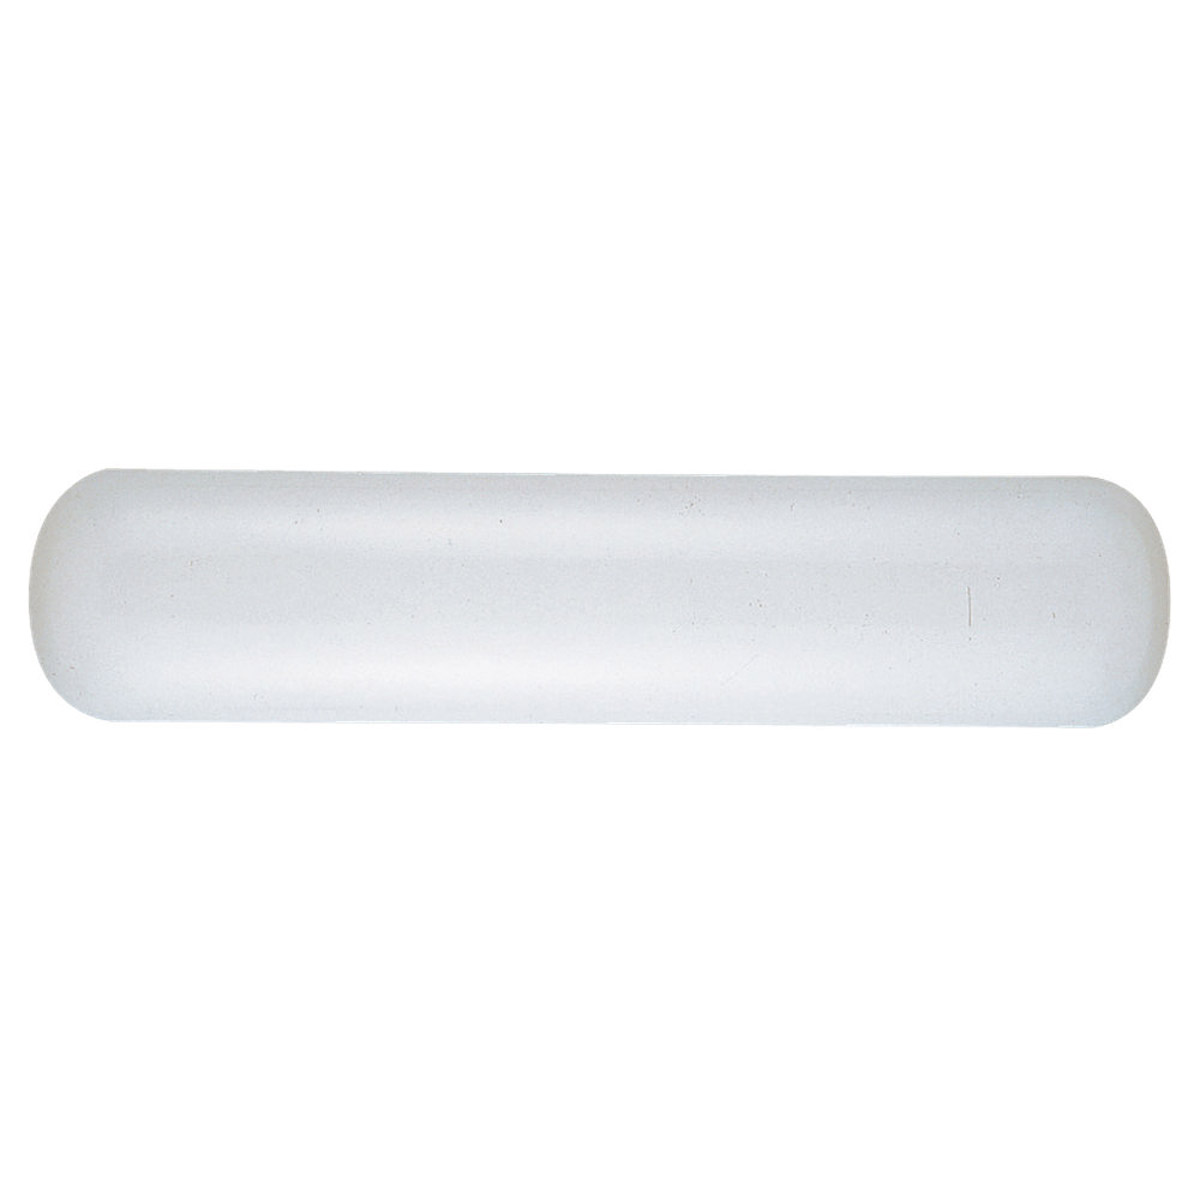 Sea Gull Lighting Pillow Lens Fluorescent 2 Light Wall Sconce in White Plastic 4908LE-68 photo